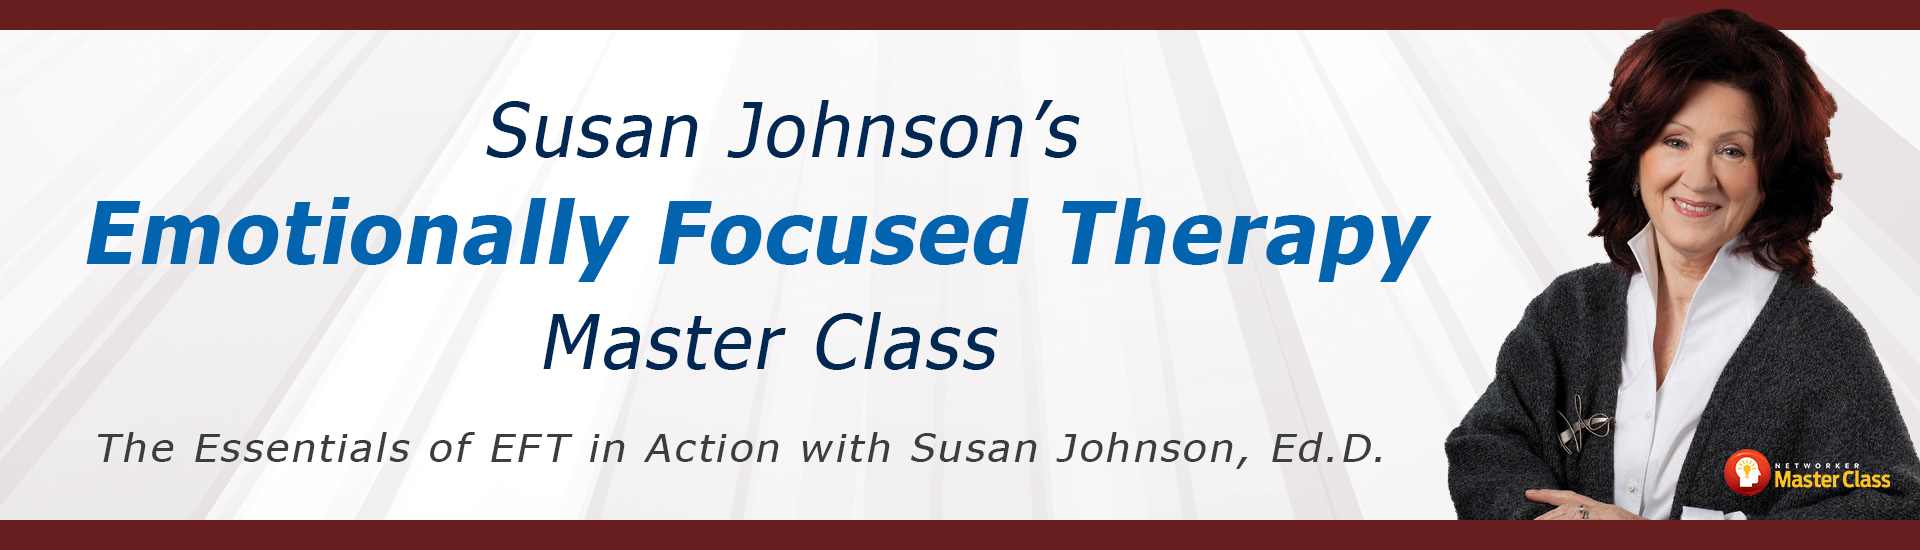 Susan Johnson's Emotionally Focused Therapy Master Class: The Essentials of EFT in Action